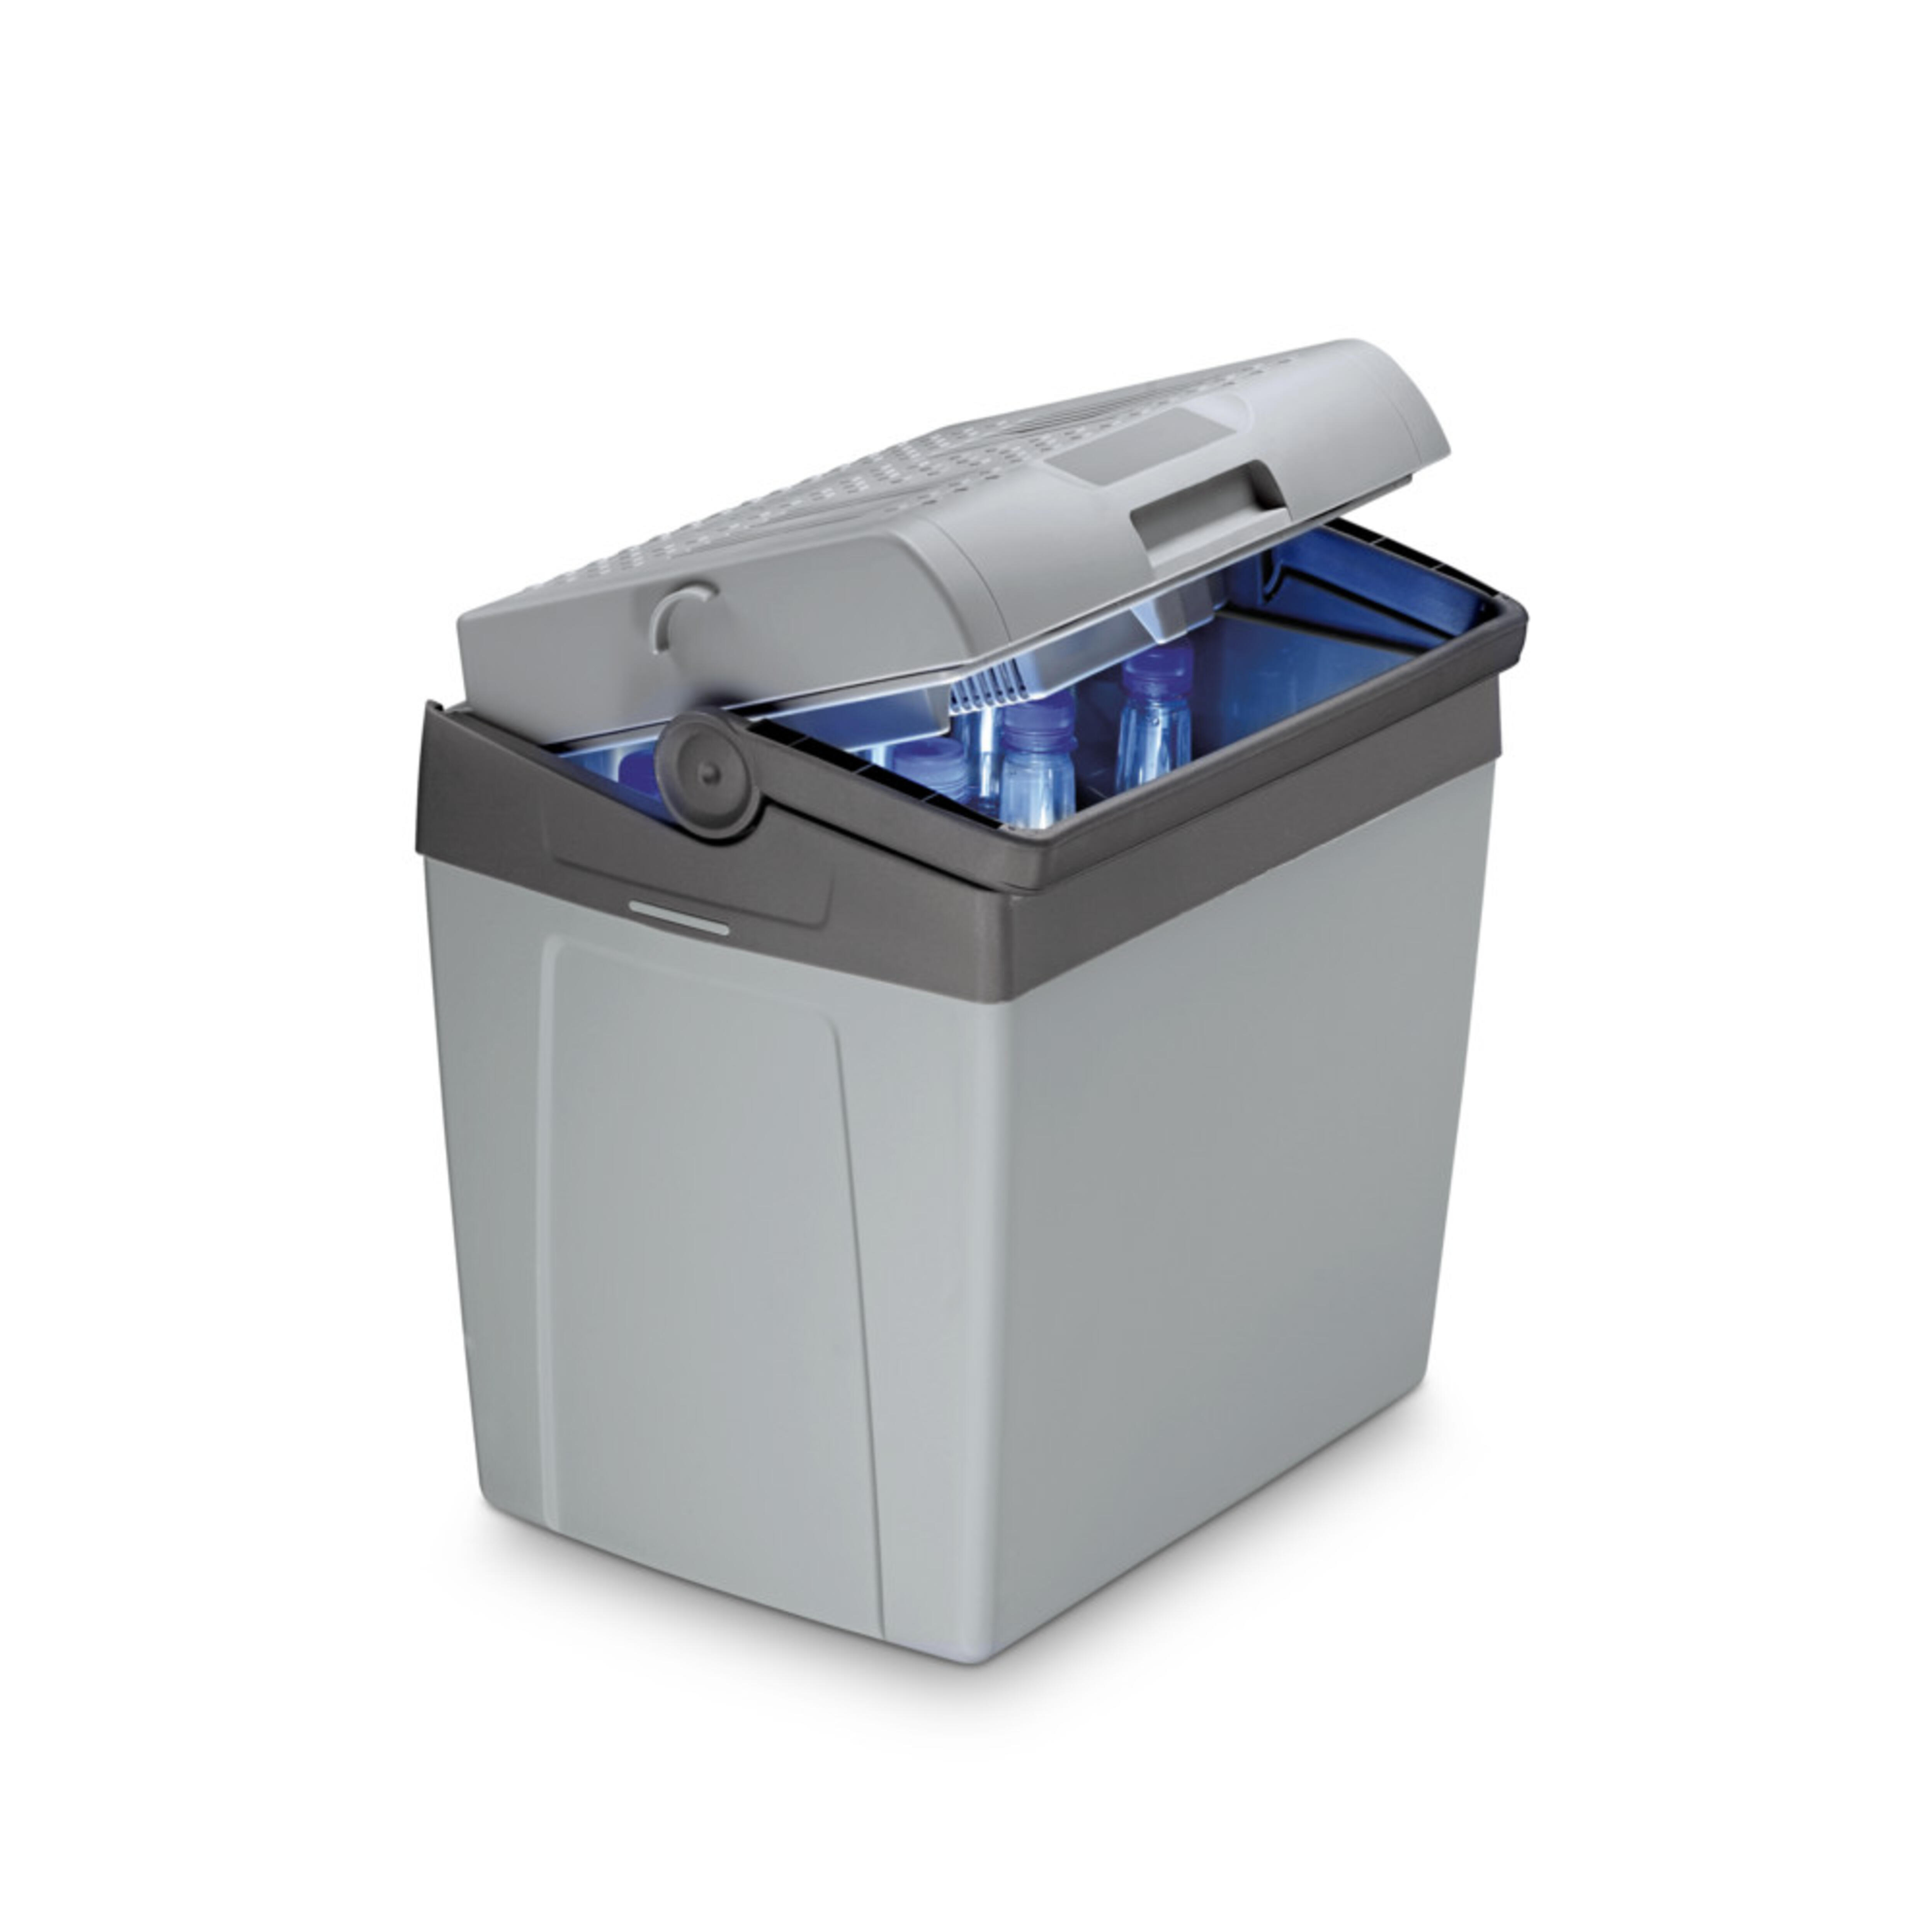 DOMETIC COOLFUN SCT 26 TRAGBARE KÜHLBOX 12V KÜHLUNG BOOT OUTDOOR CAMPING AUTO